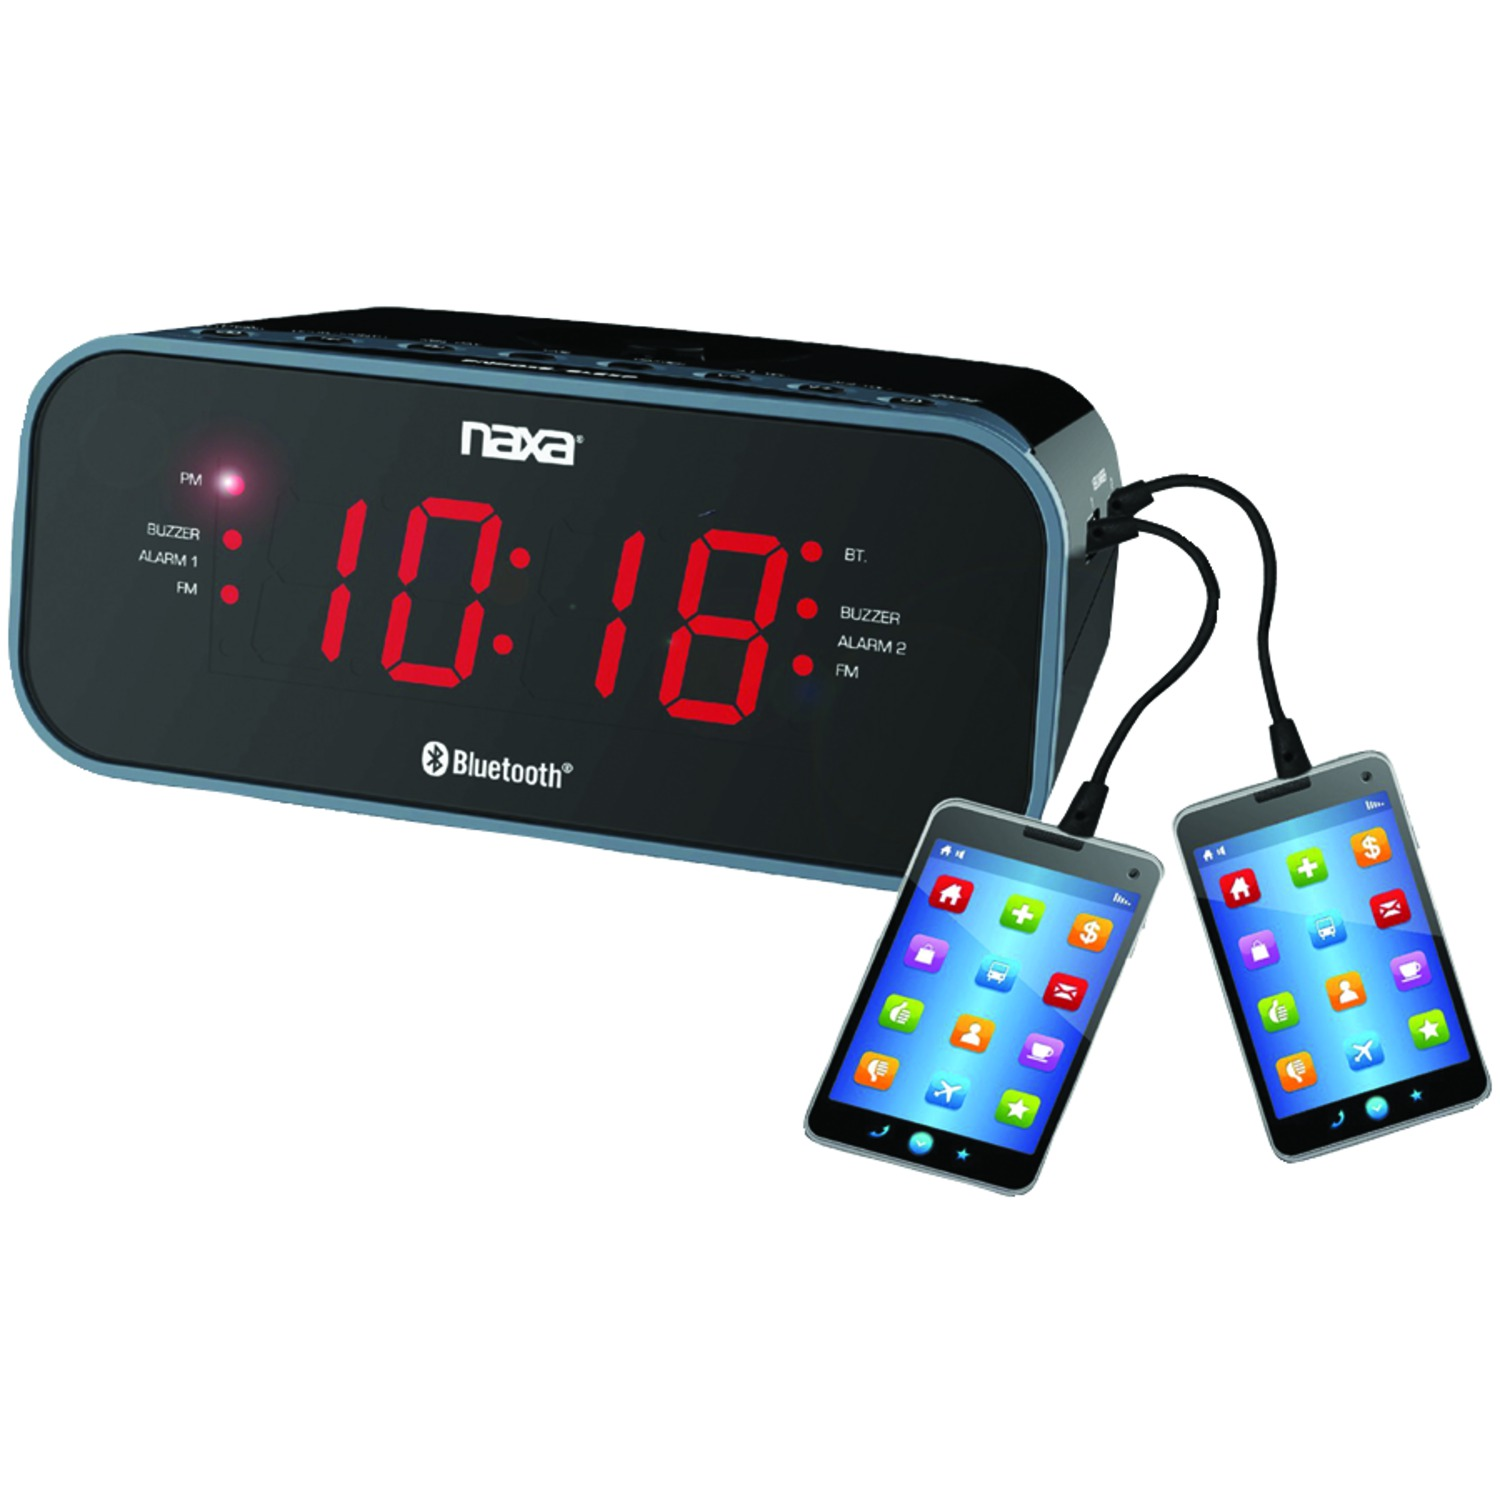 naxa nrc 182 bluetooth r dual alarm clock radio with 2 usb charge ports. Black Bedroom Furniture Sets. Home Design Ideas